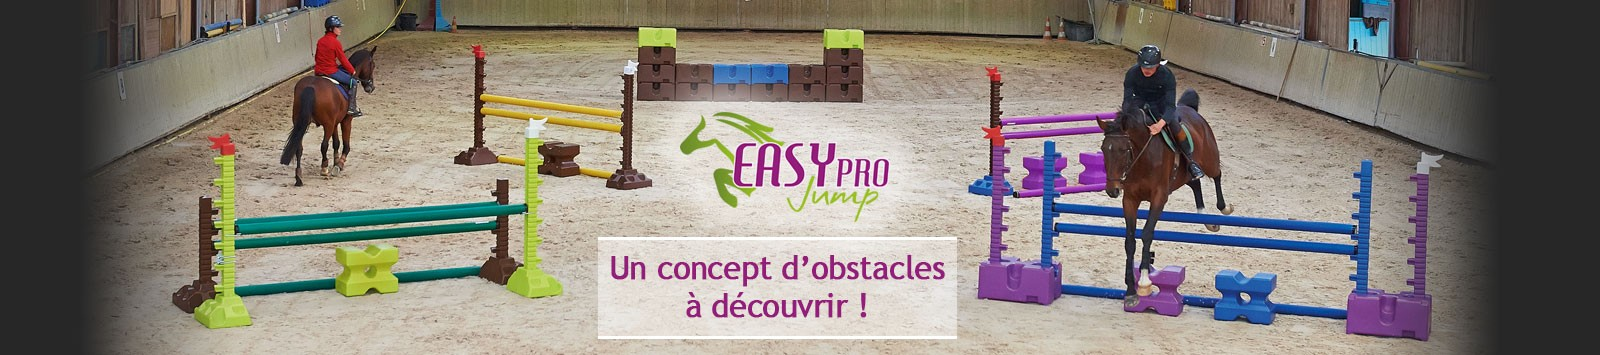 Concept d'obstacles Easy Pro Jump